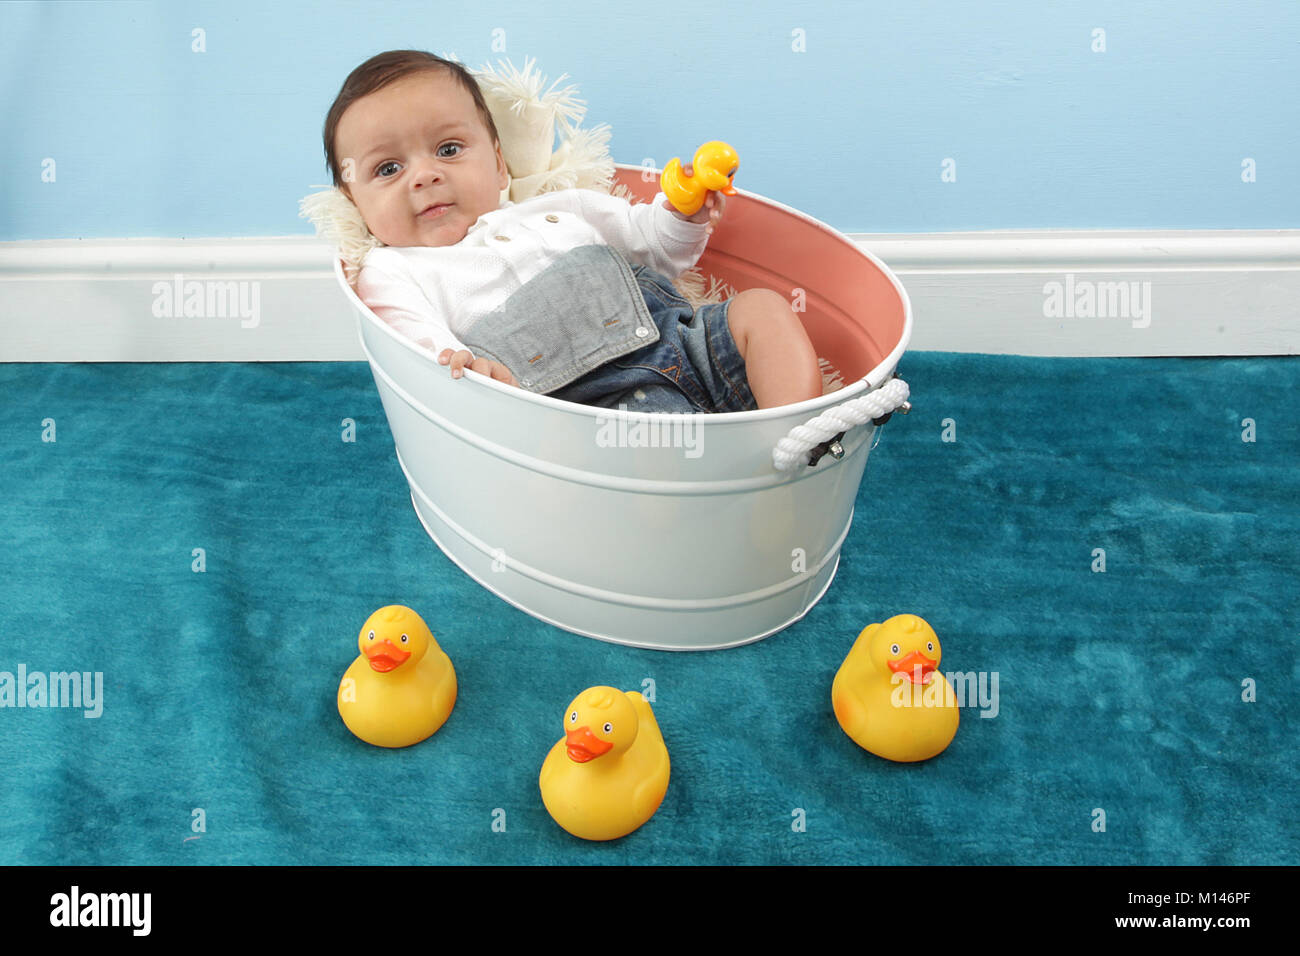 Month Old Mixed Race Baby Stock Photos & Month Old Mixed Race Baby ...